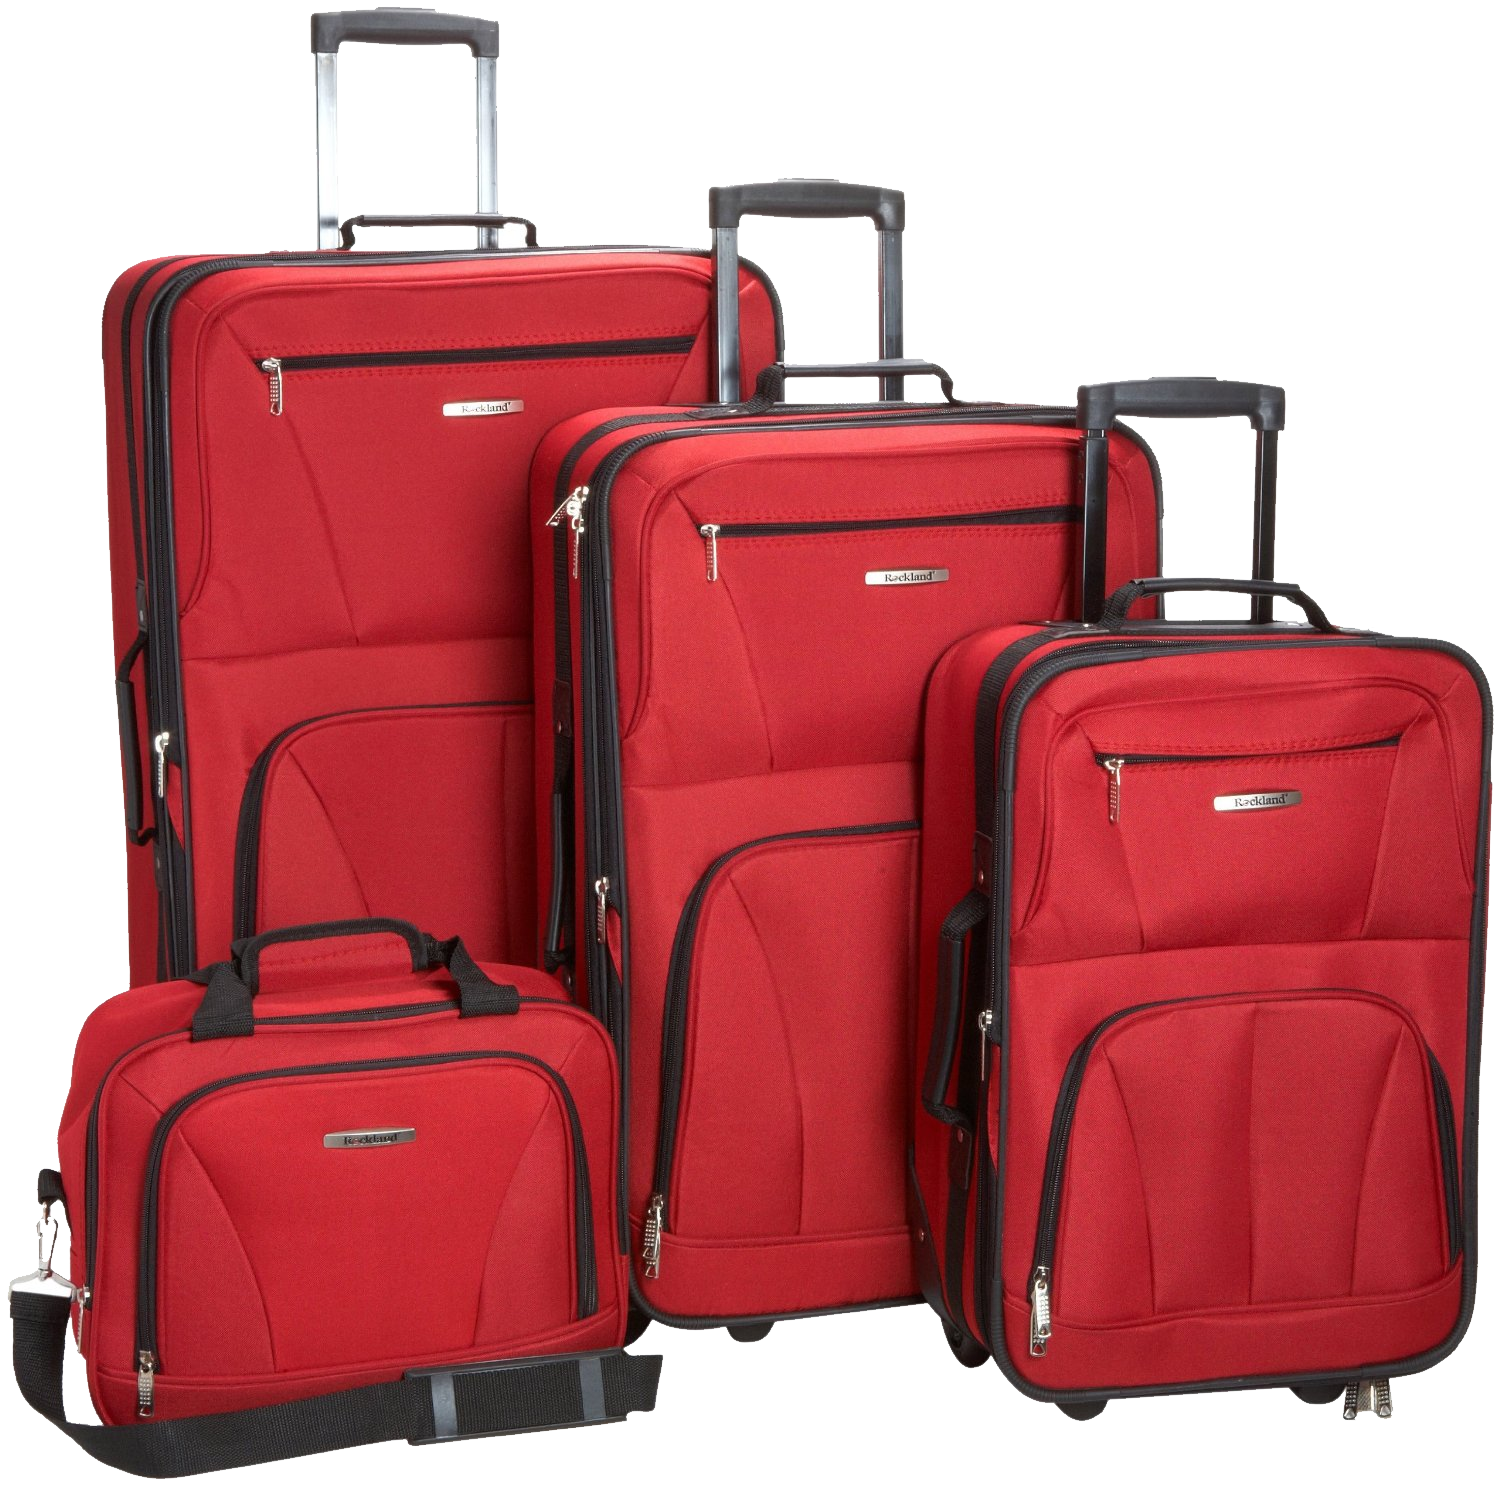 Travel Bags Png - Luggage Bags Png & Free Luggage Bags.png Transparent Images #90421 ...